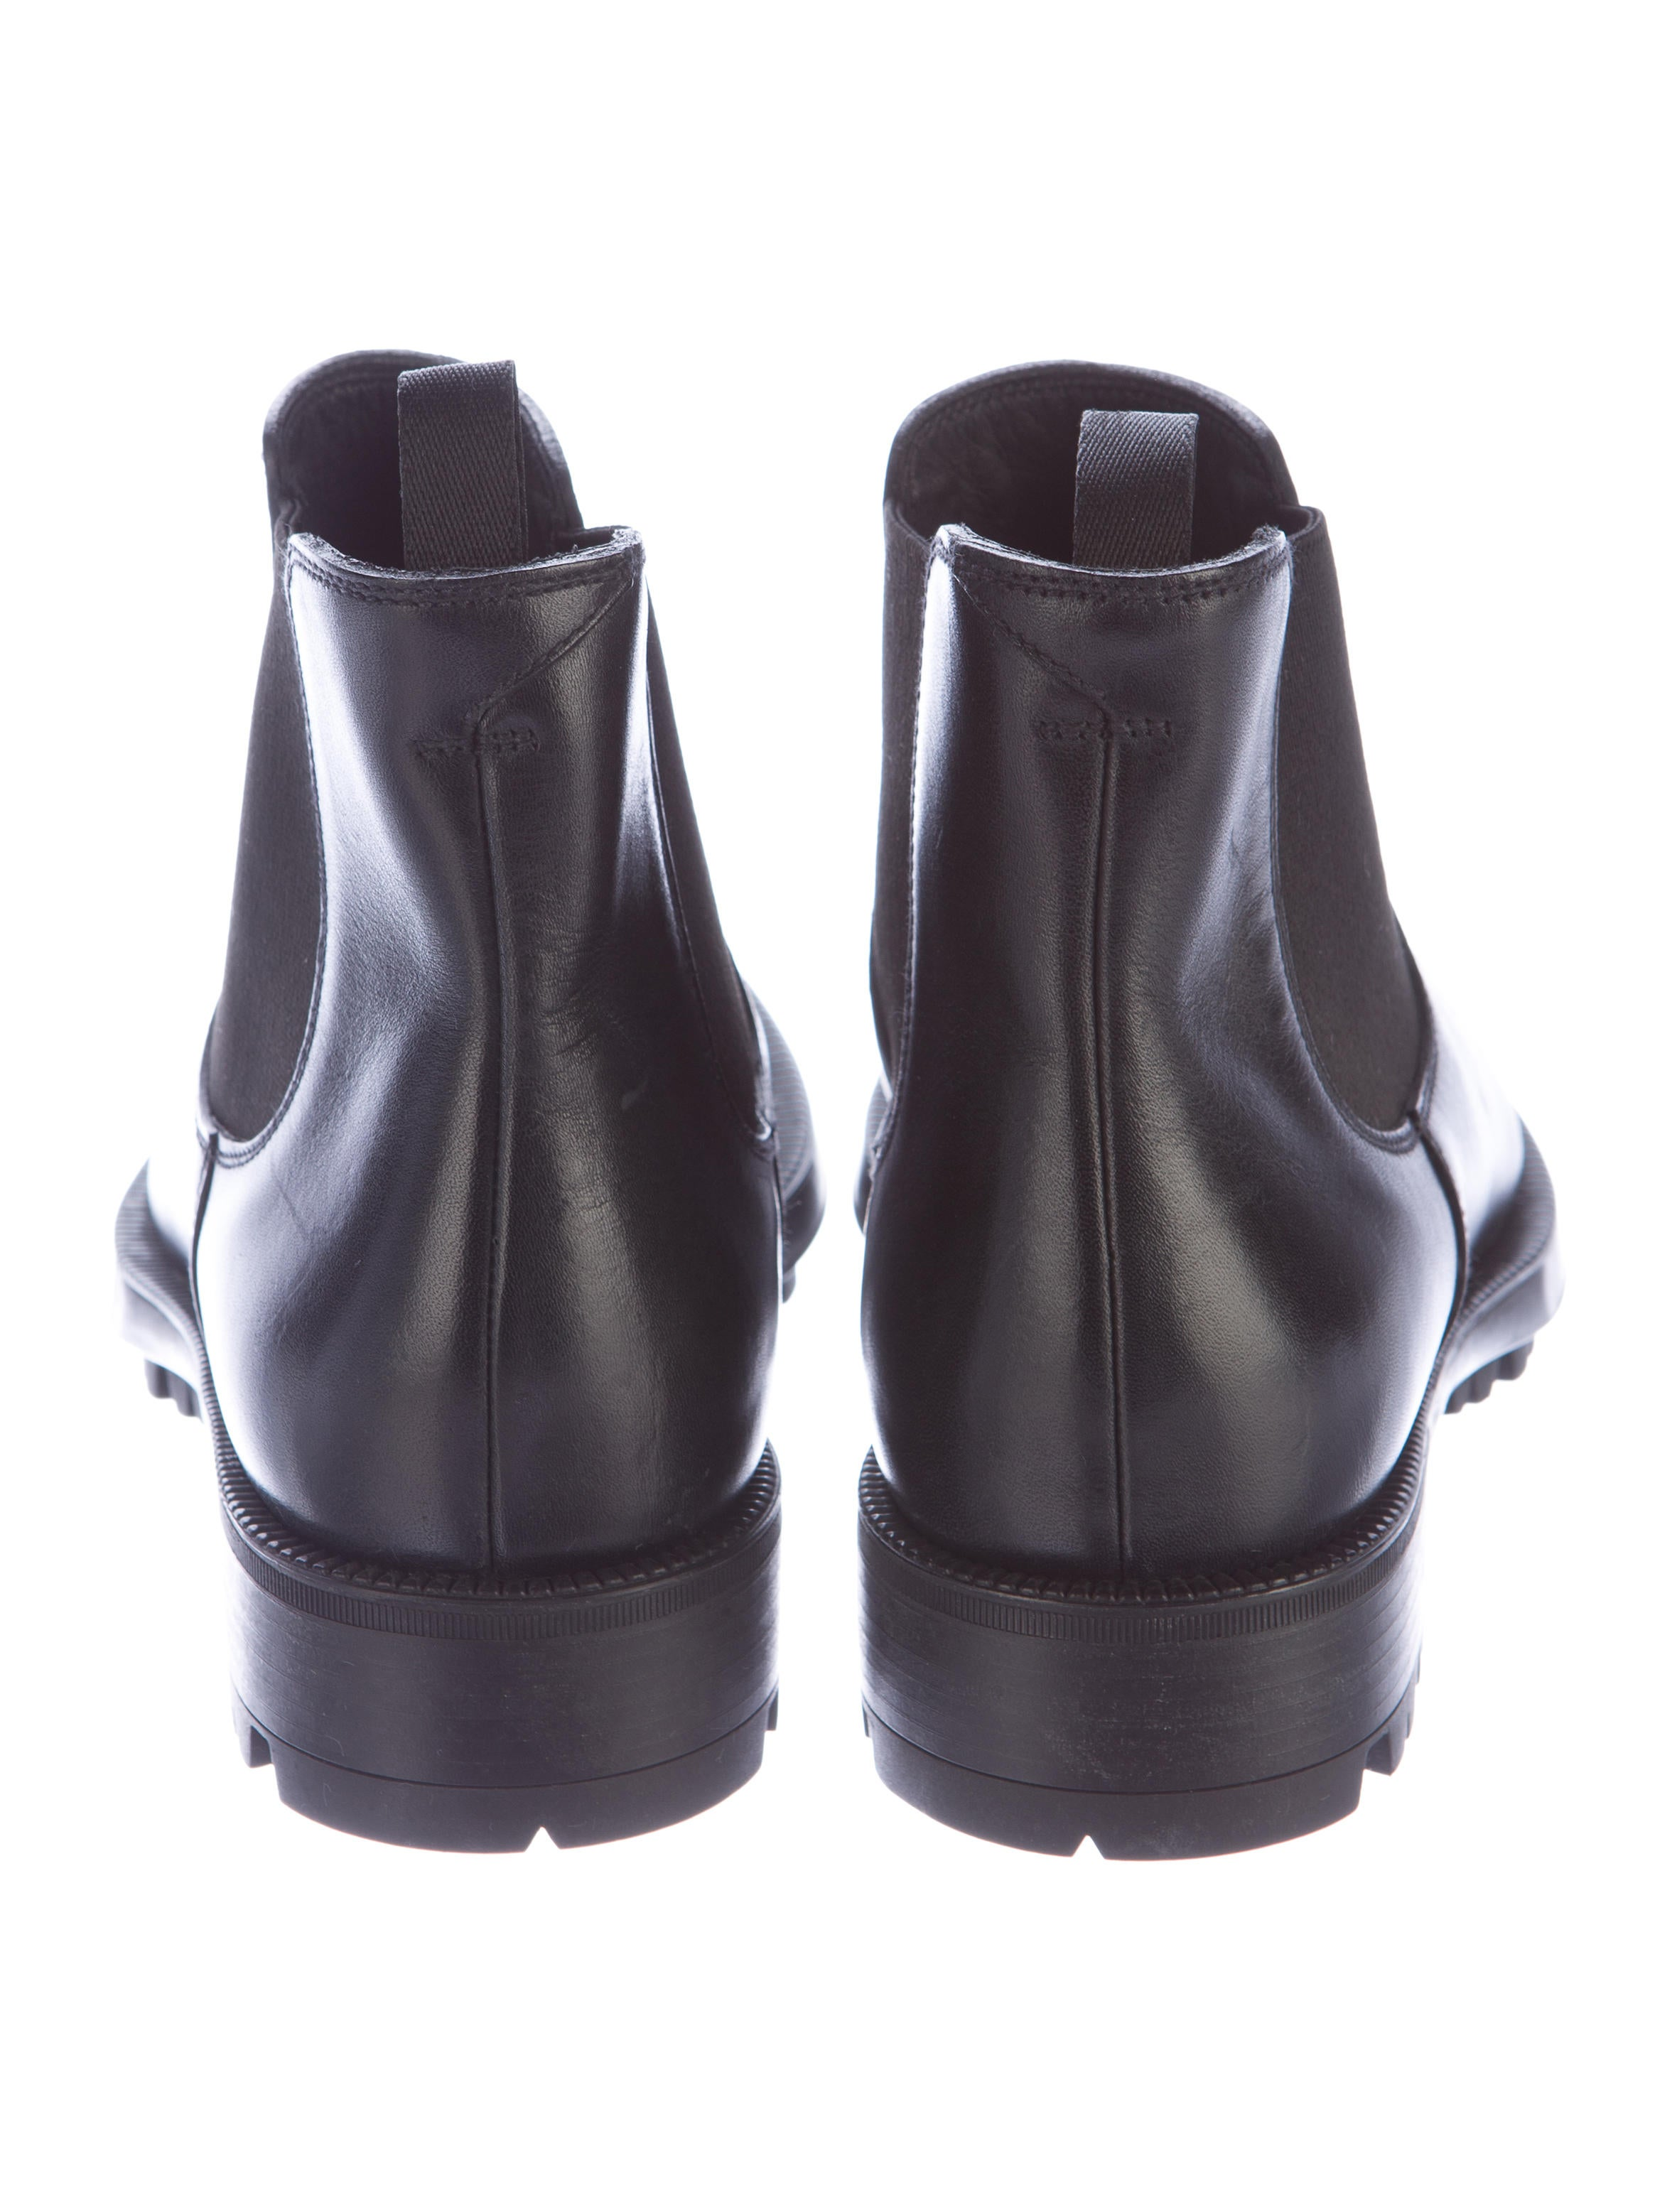 prada leather chelsea ankle boots shoes pra117089